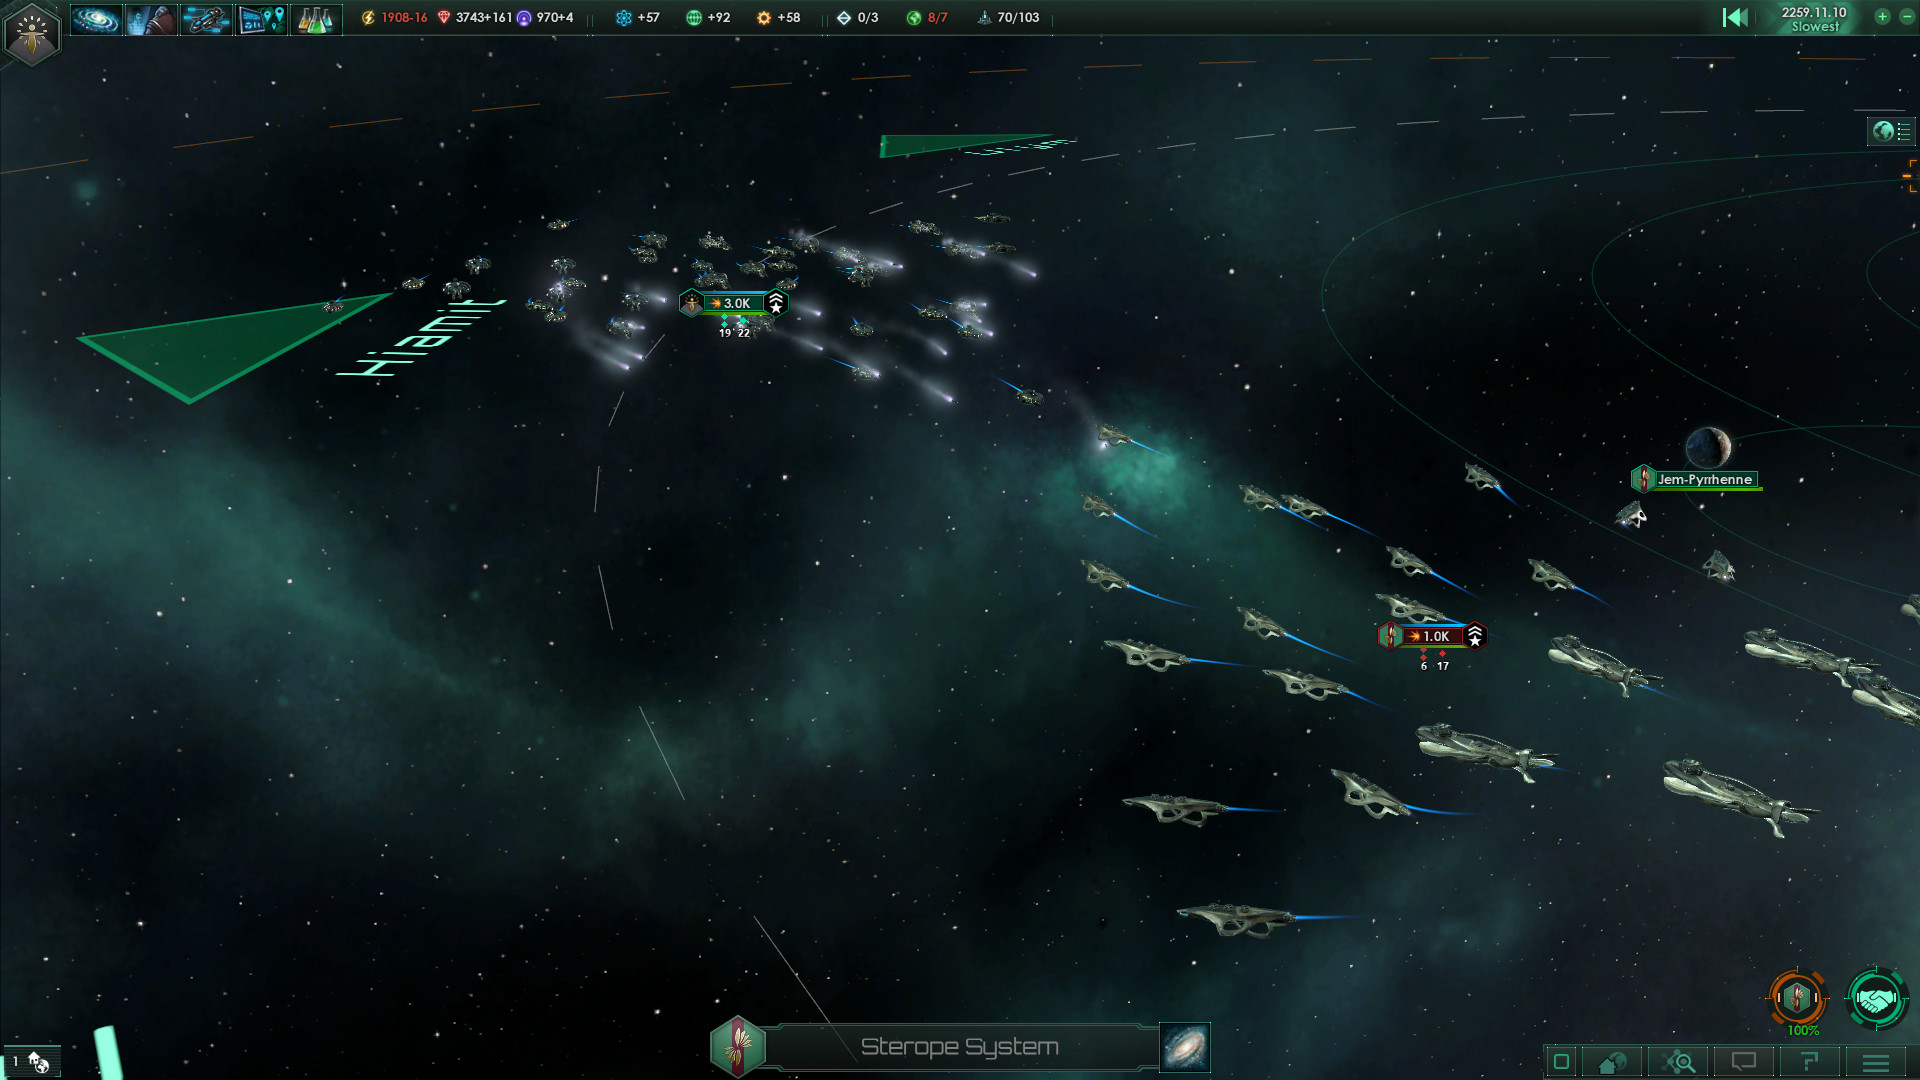 Stellaris - What are the best singleplayer games on Steam? - Slant